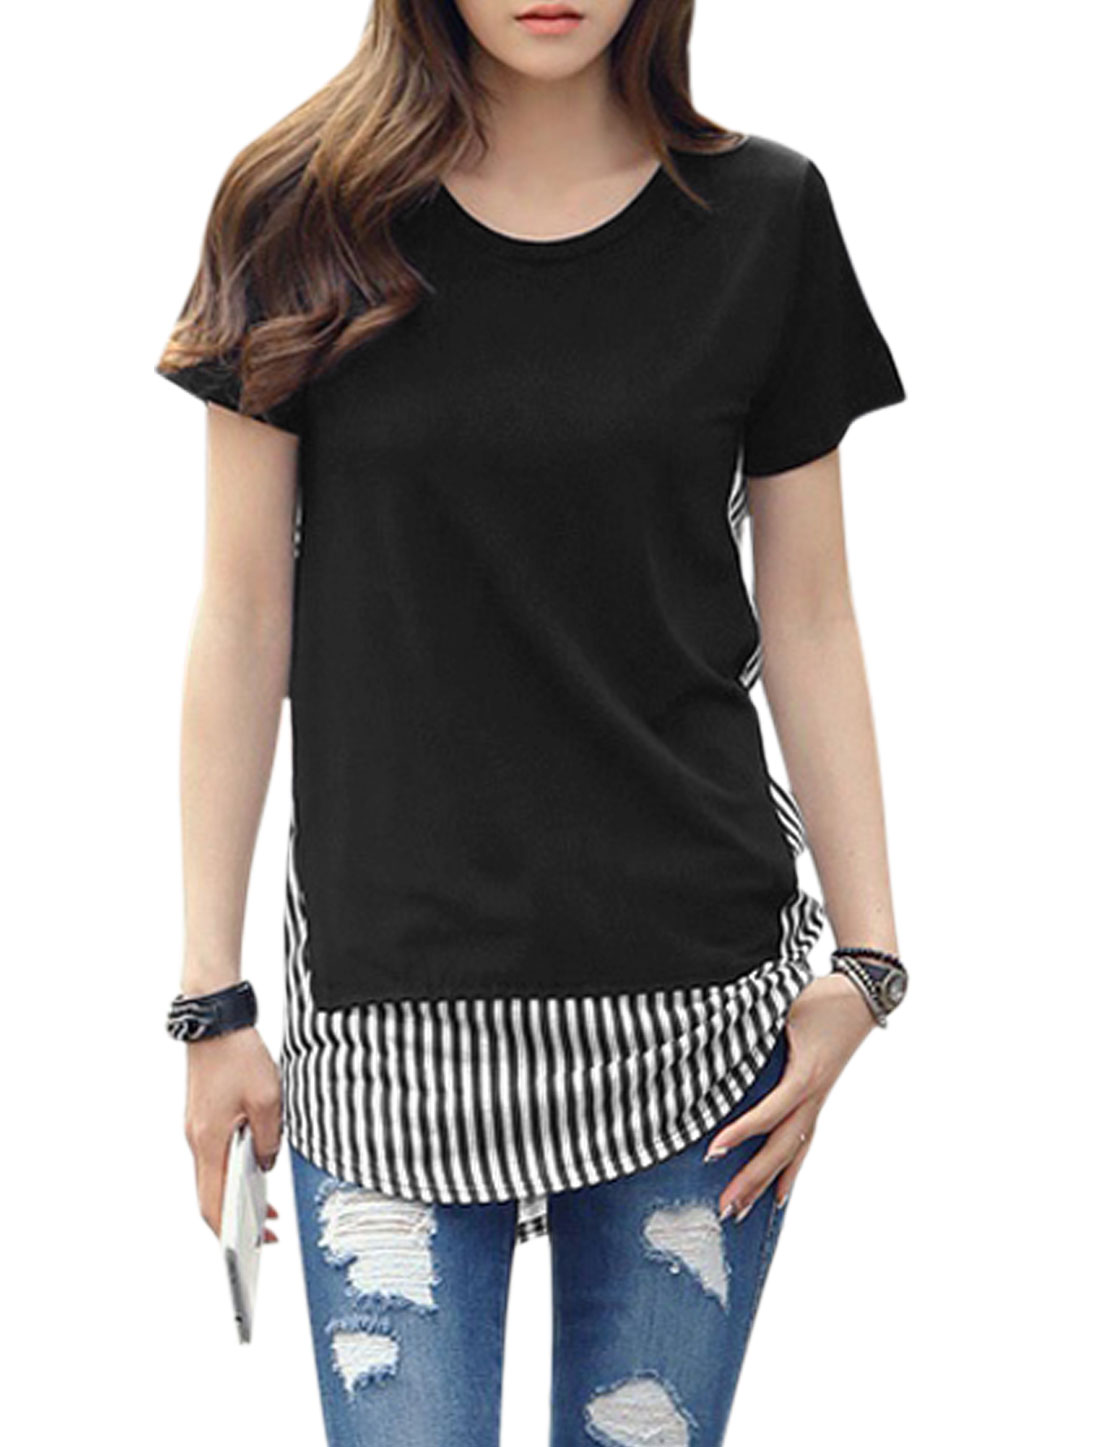 Lady Vertical Stripes Round Hem Short Sleeve Panel Tunic T-Shirt Black XS